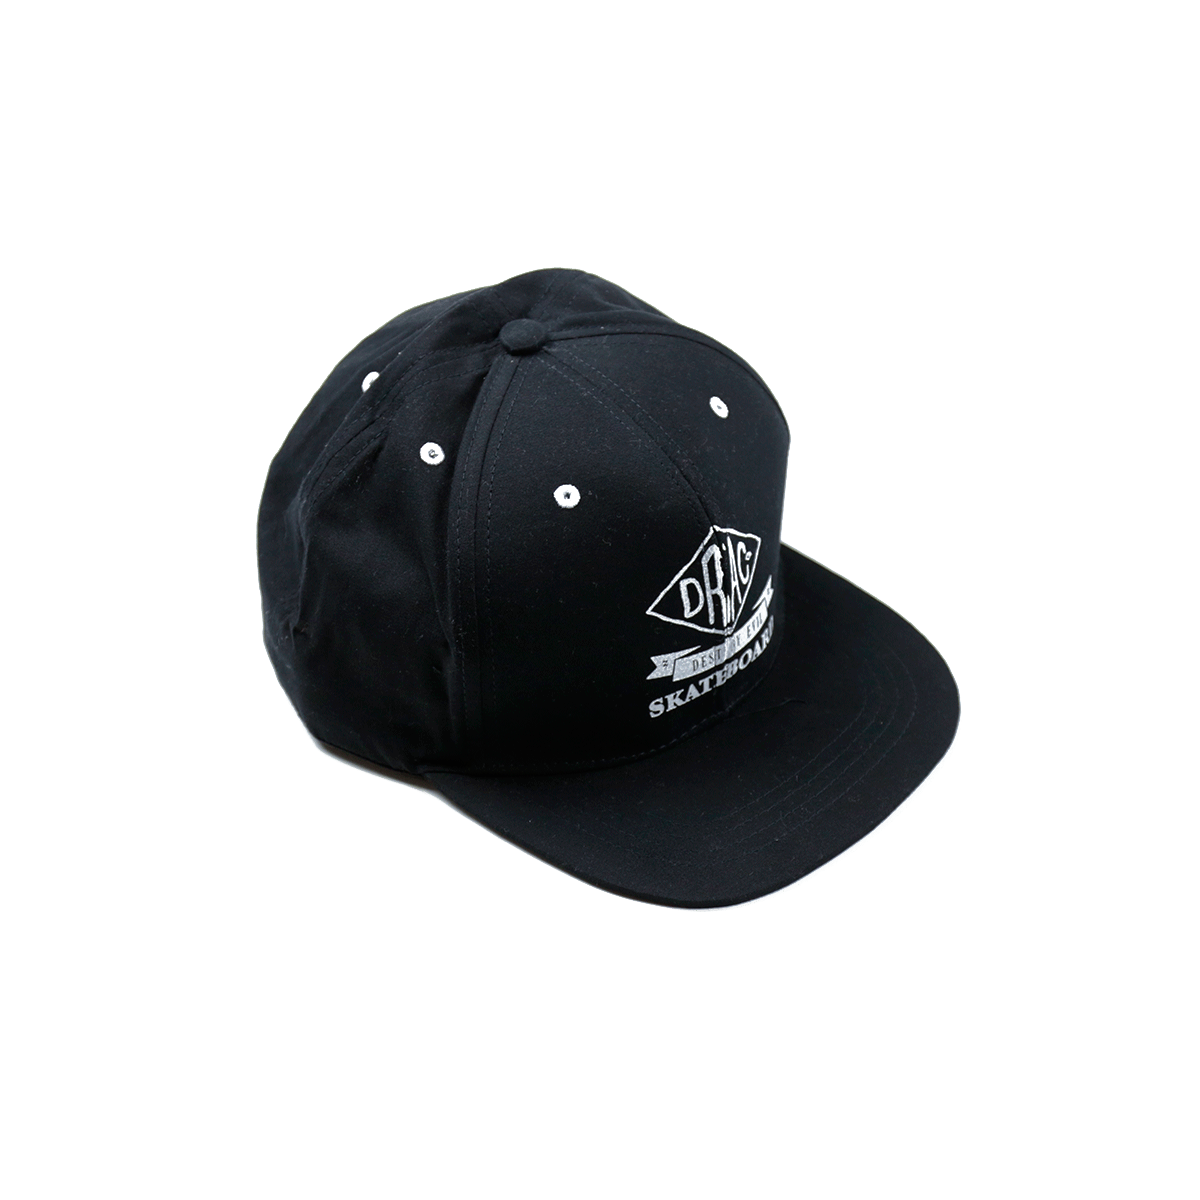 Gorra Destroy Skateboard Black